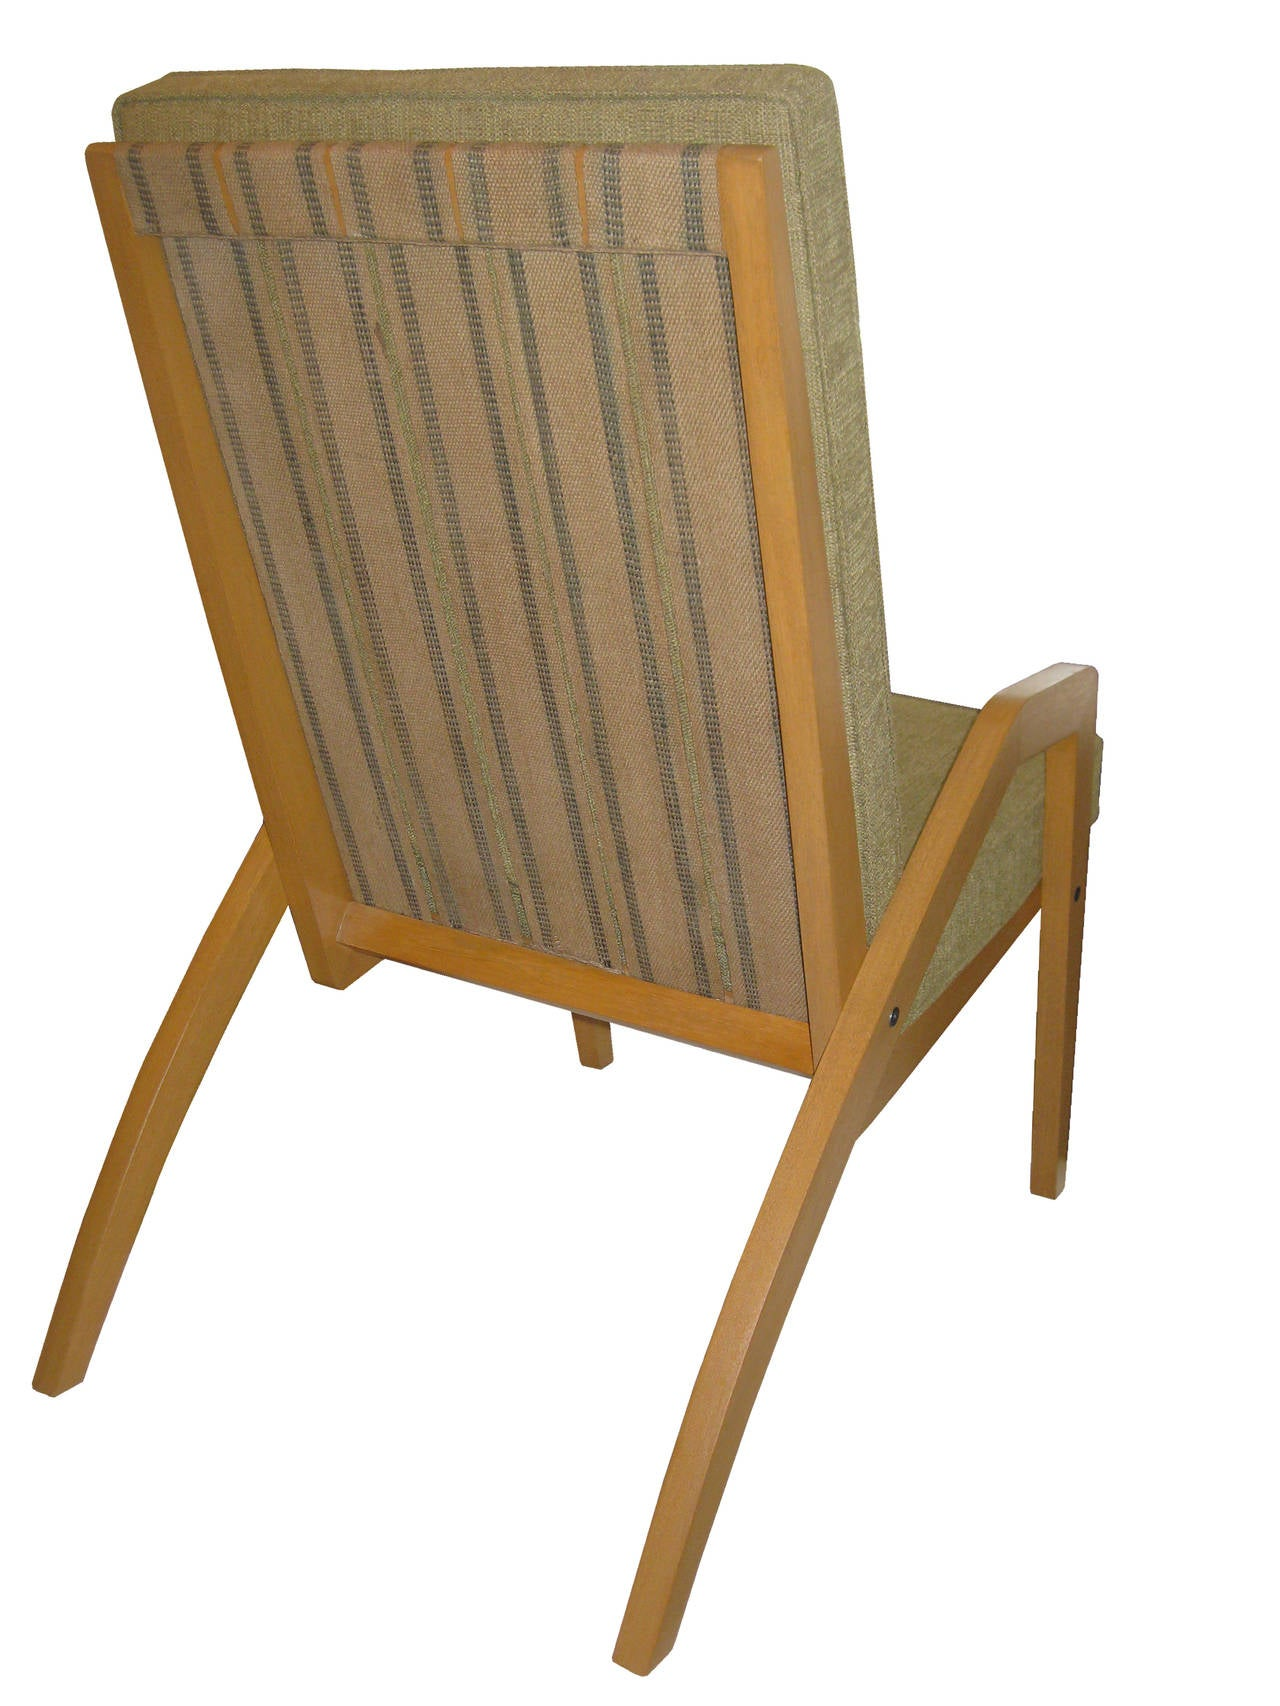 Light Oak Chair with Original Jute Webbing and Upholstery circa